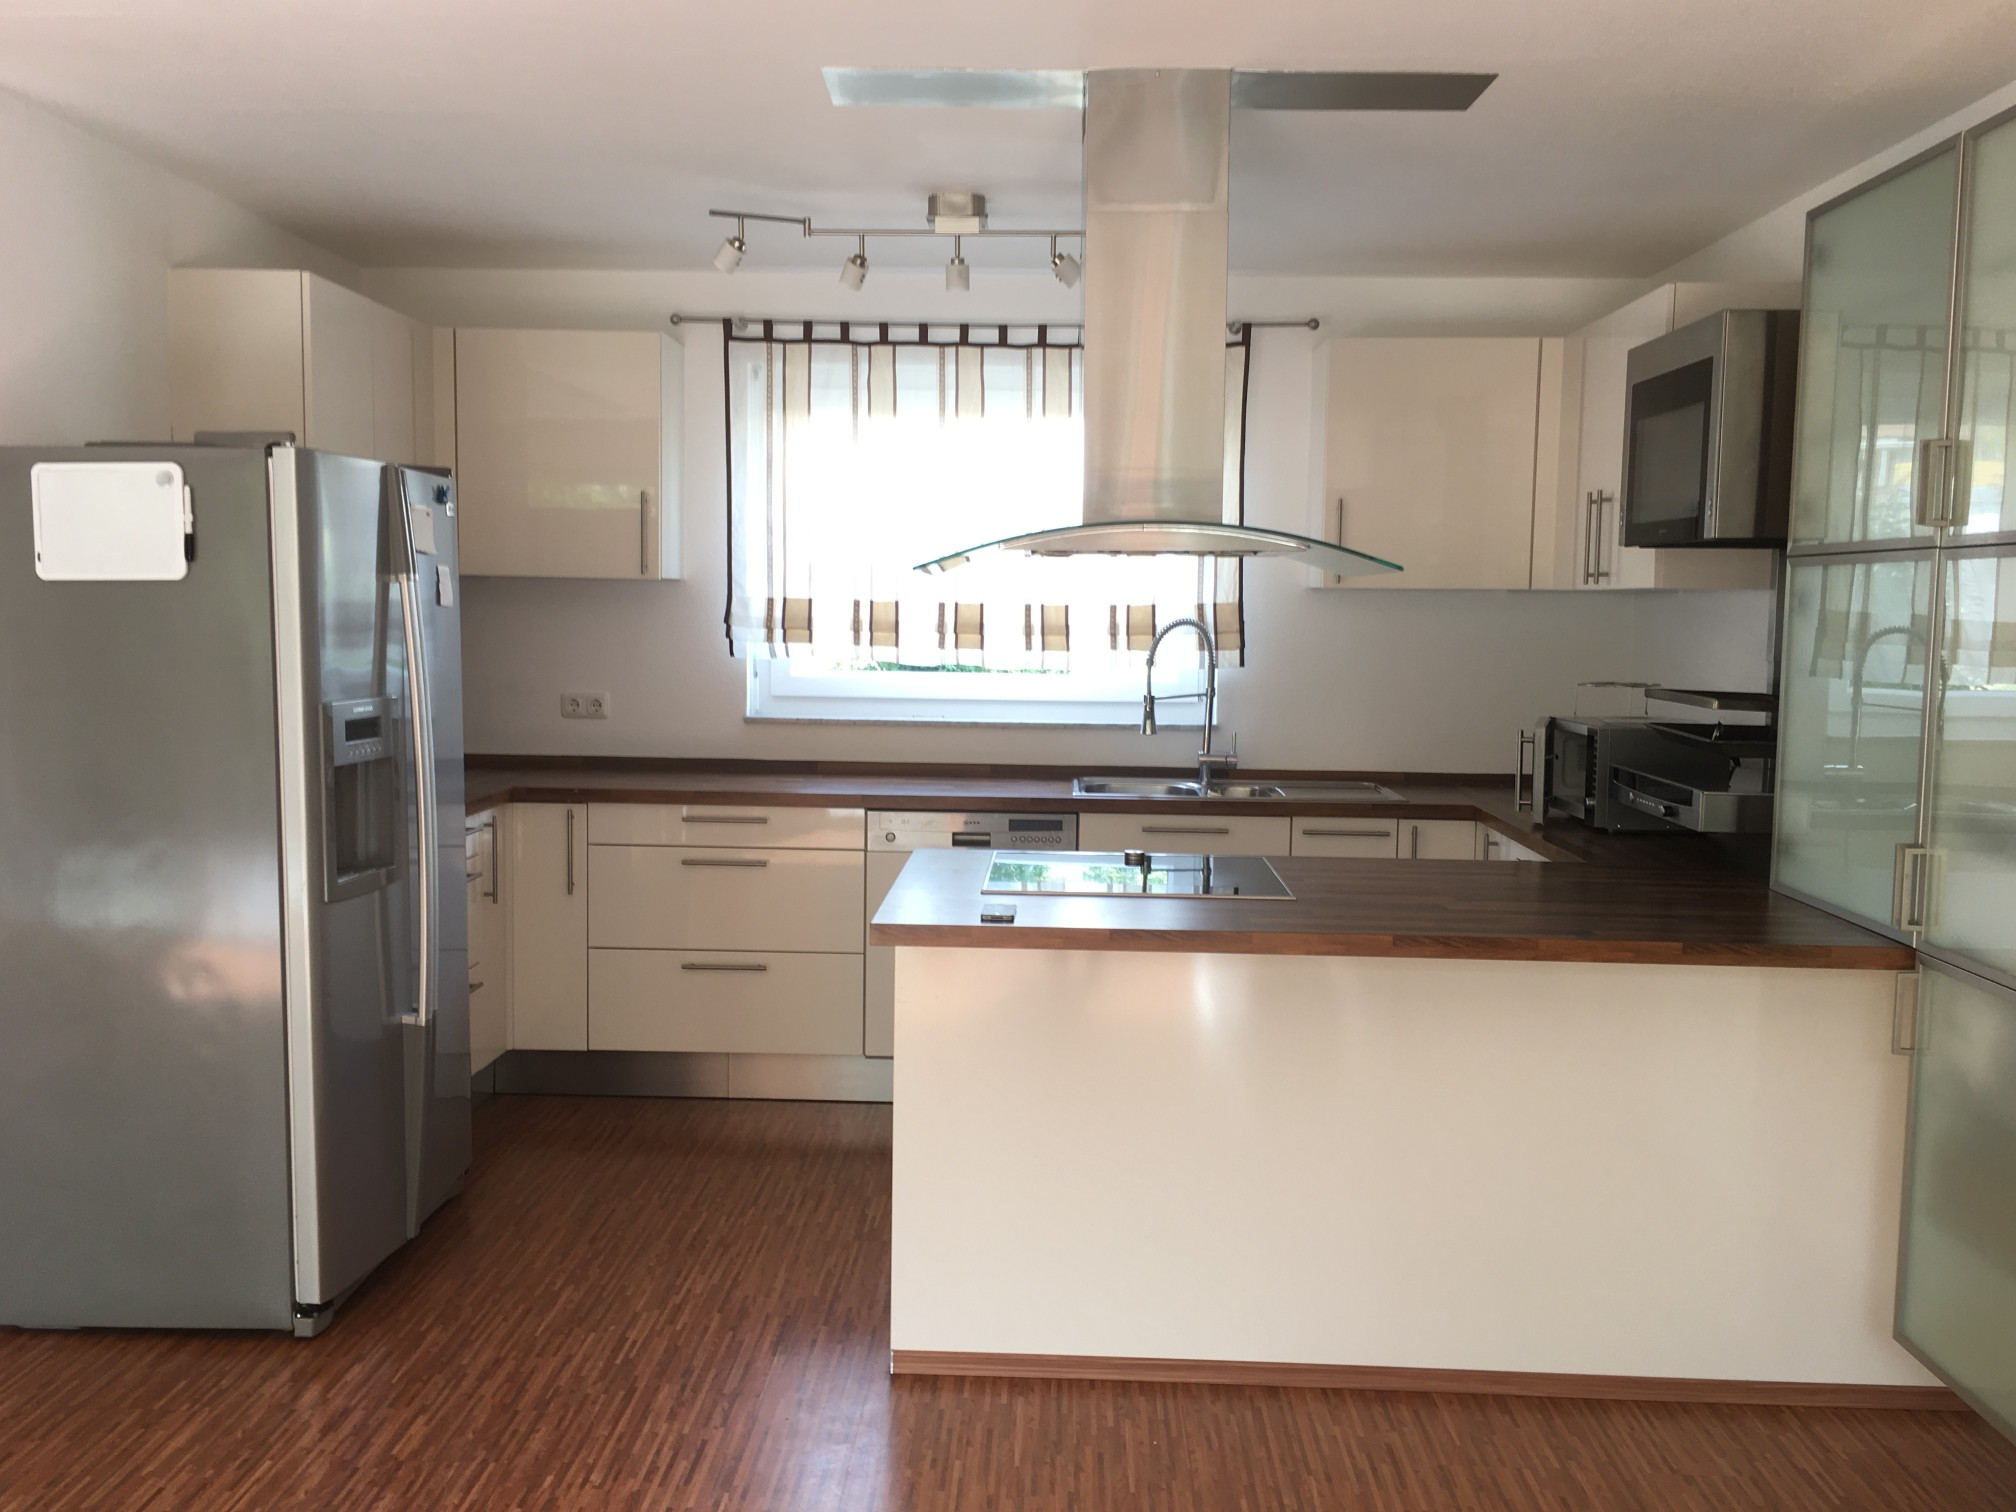 4 bedrooms house for rent am medenbach 2 bathrooms listing id